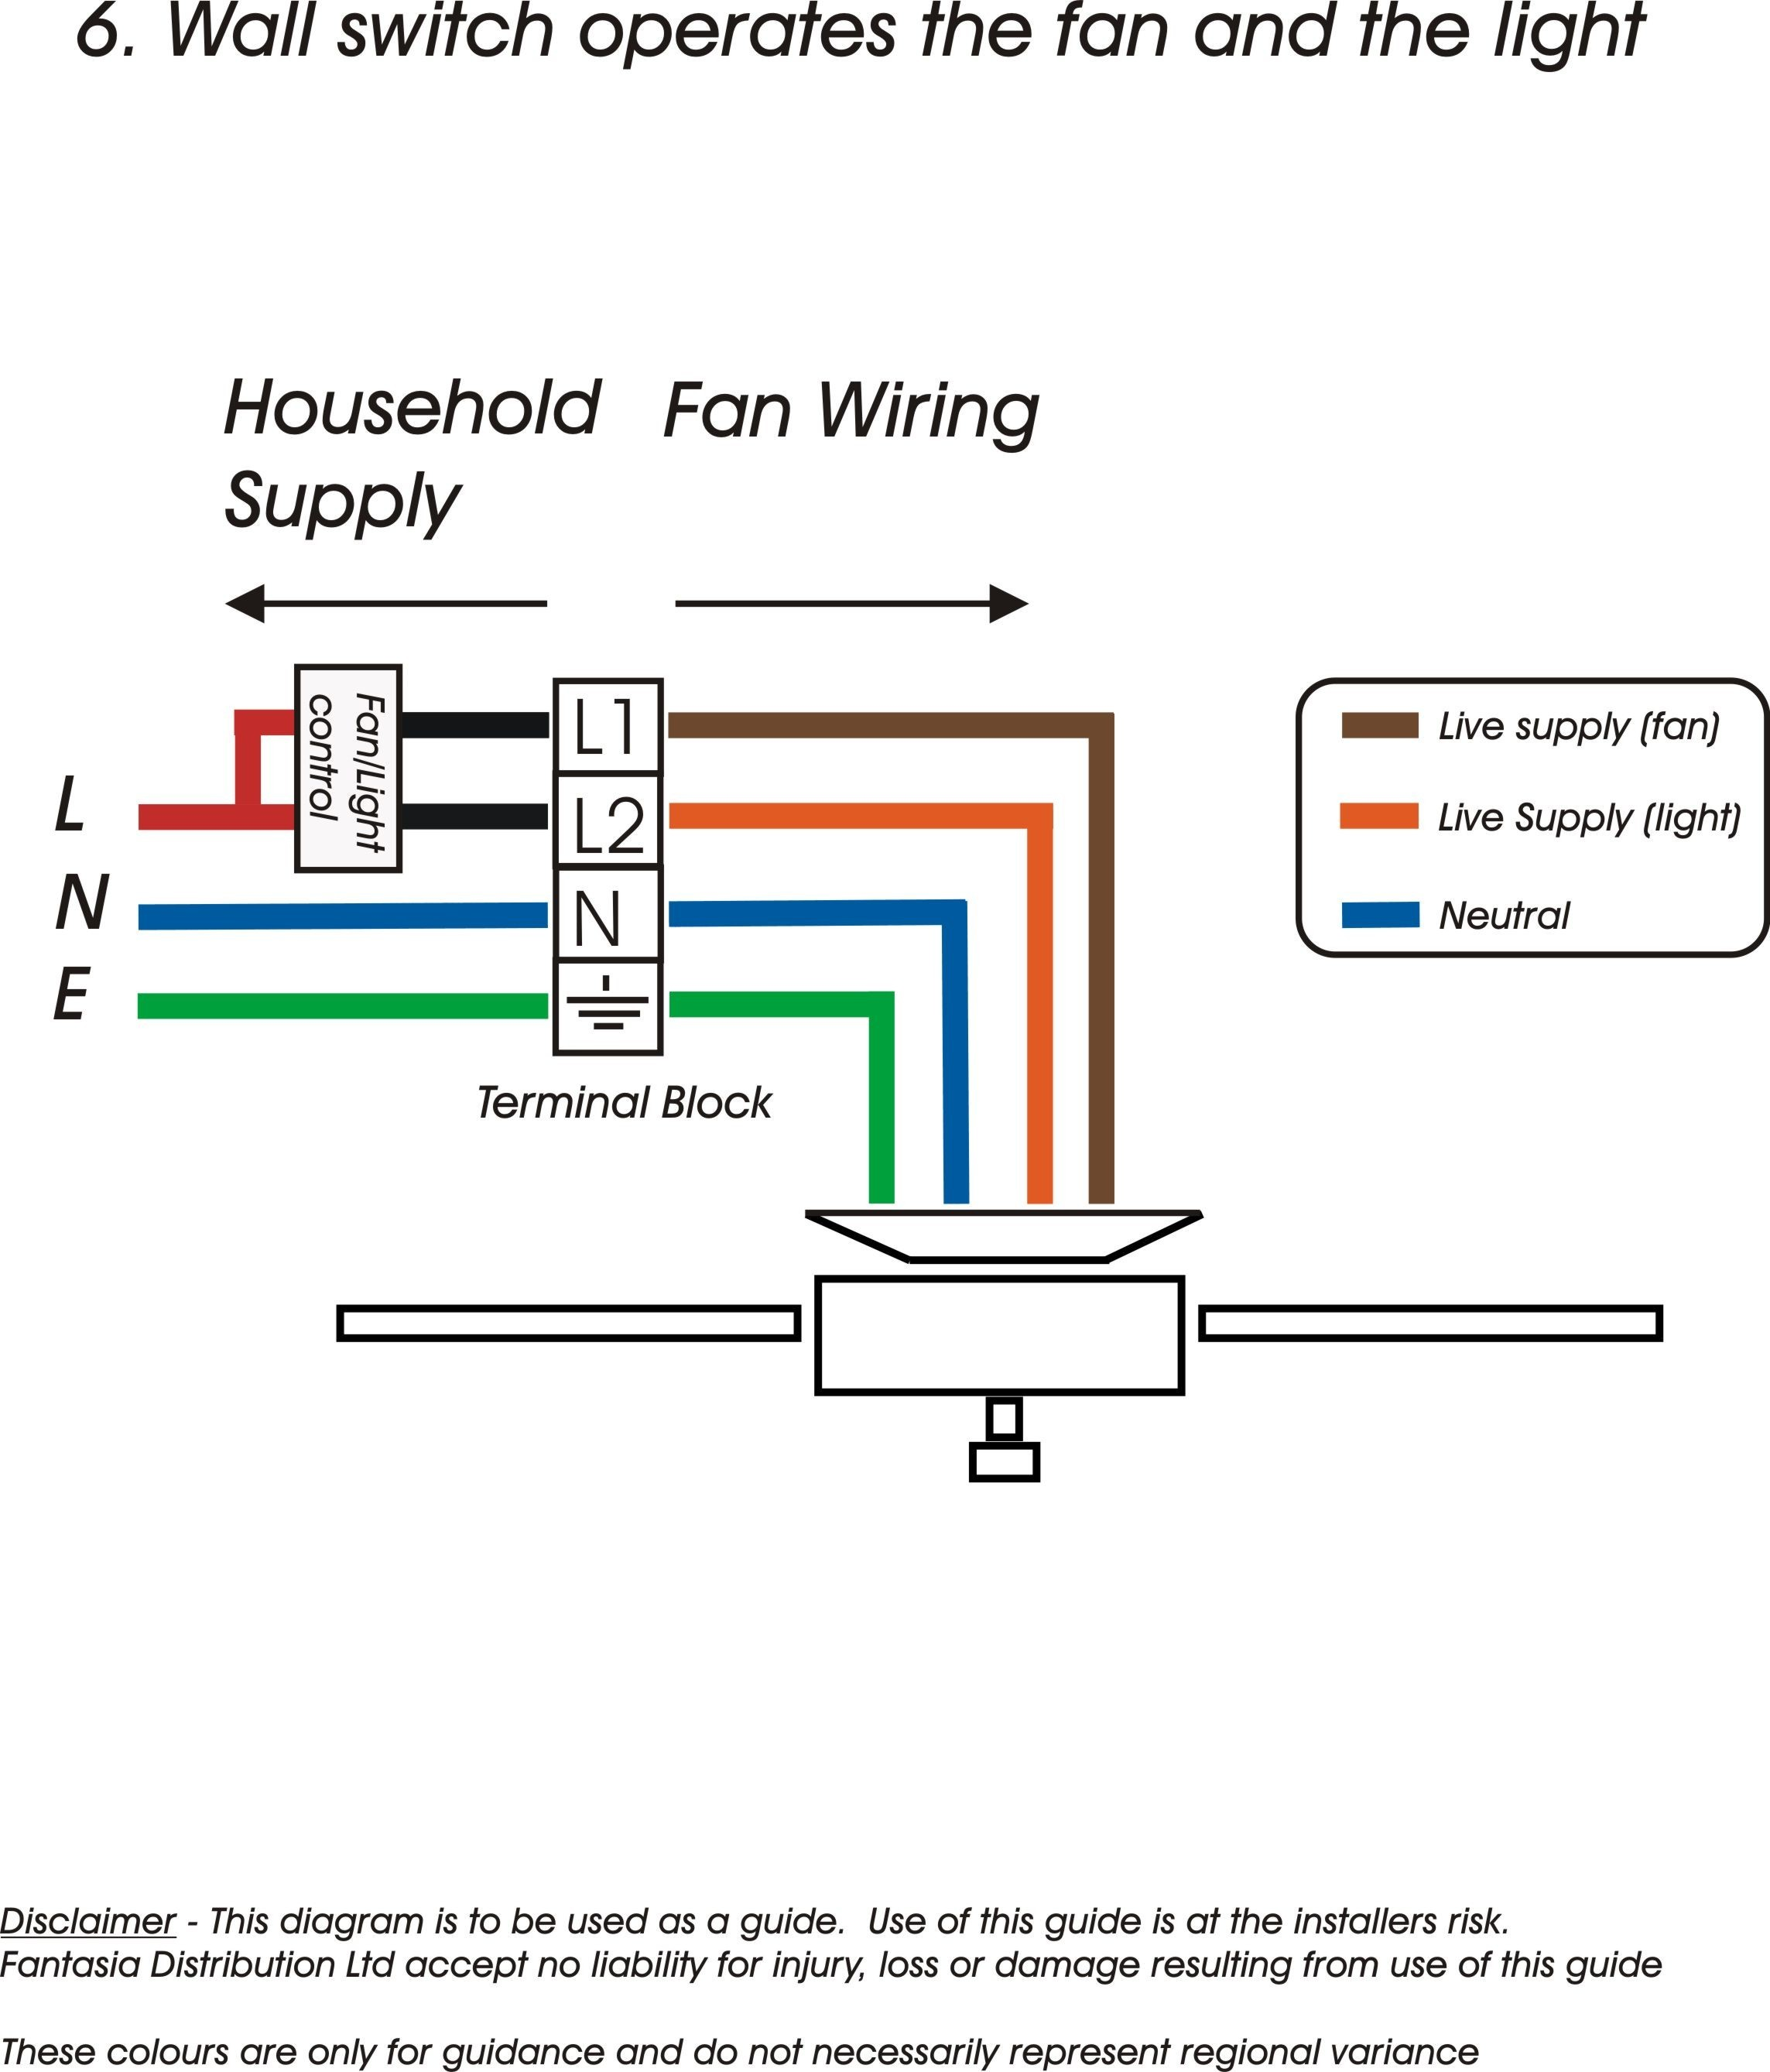 Light socket Wiring Diagram Ceiling Fan Wiring Diagram Australia Fresh without Light E280a2 Of Light socket Wiring Diagram